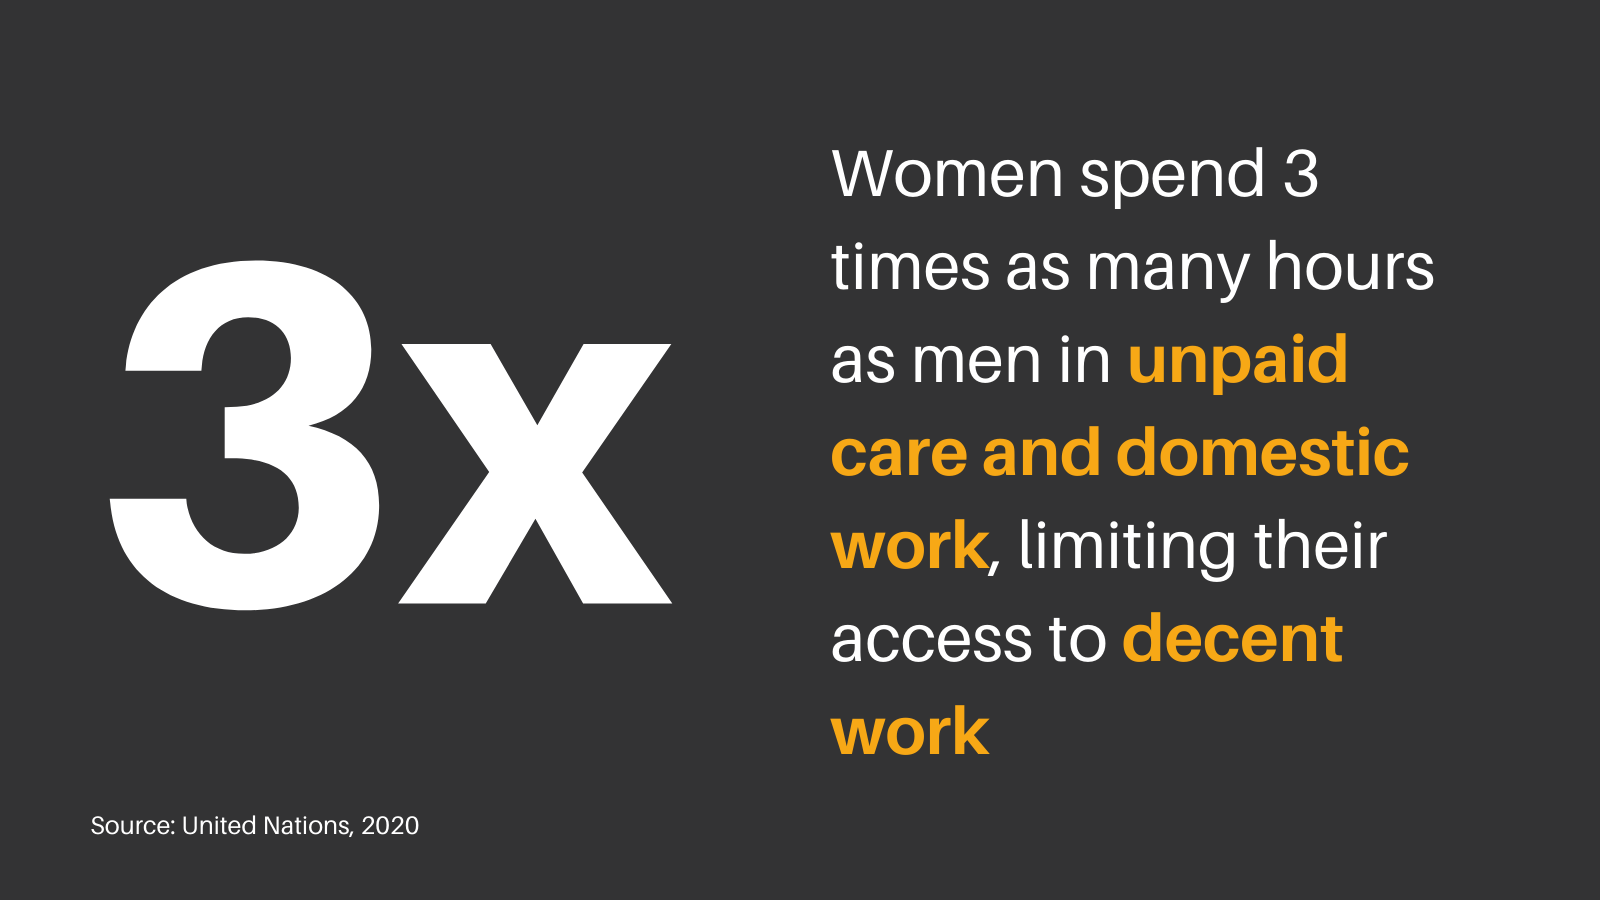 Illustration showing women spend 3 times as many hours as men in unpaid work